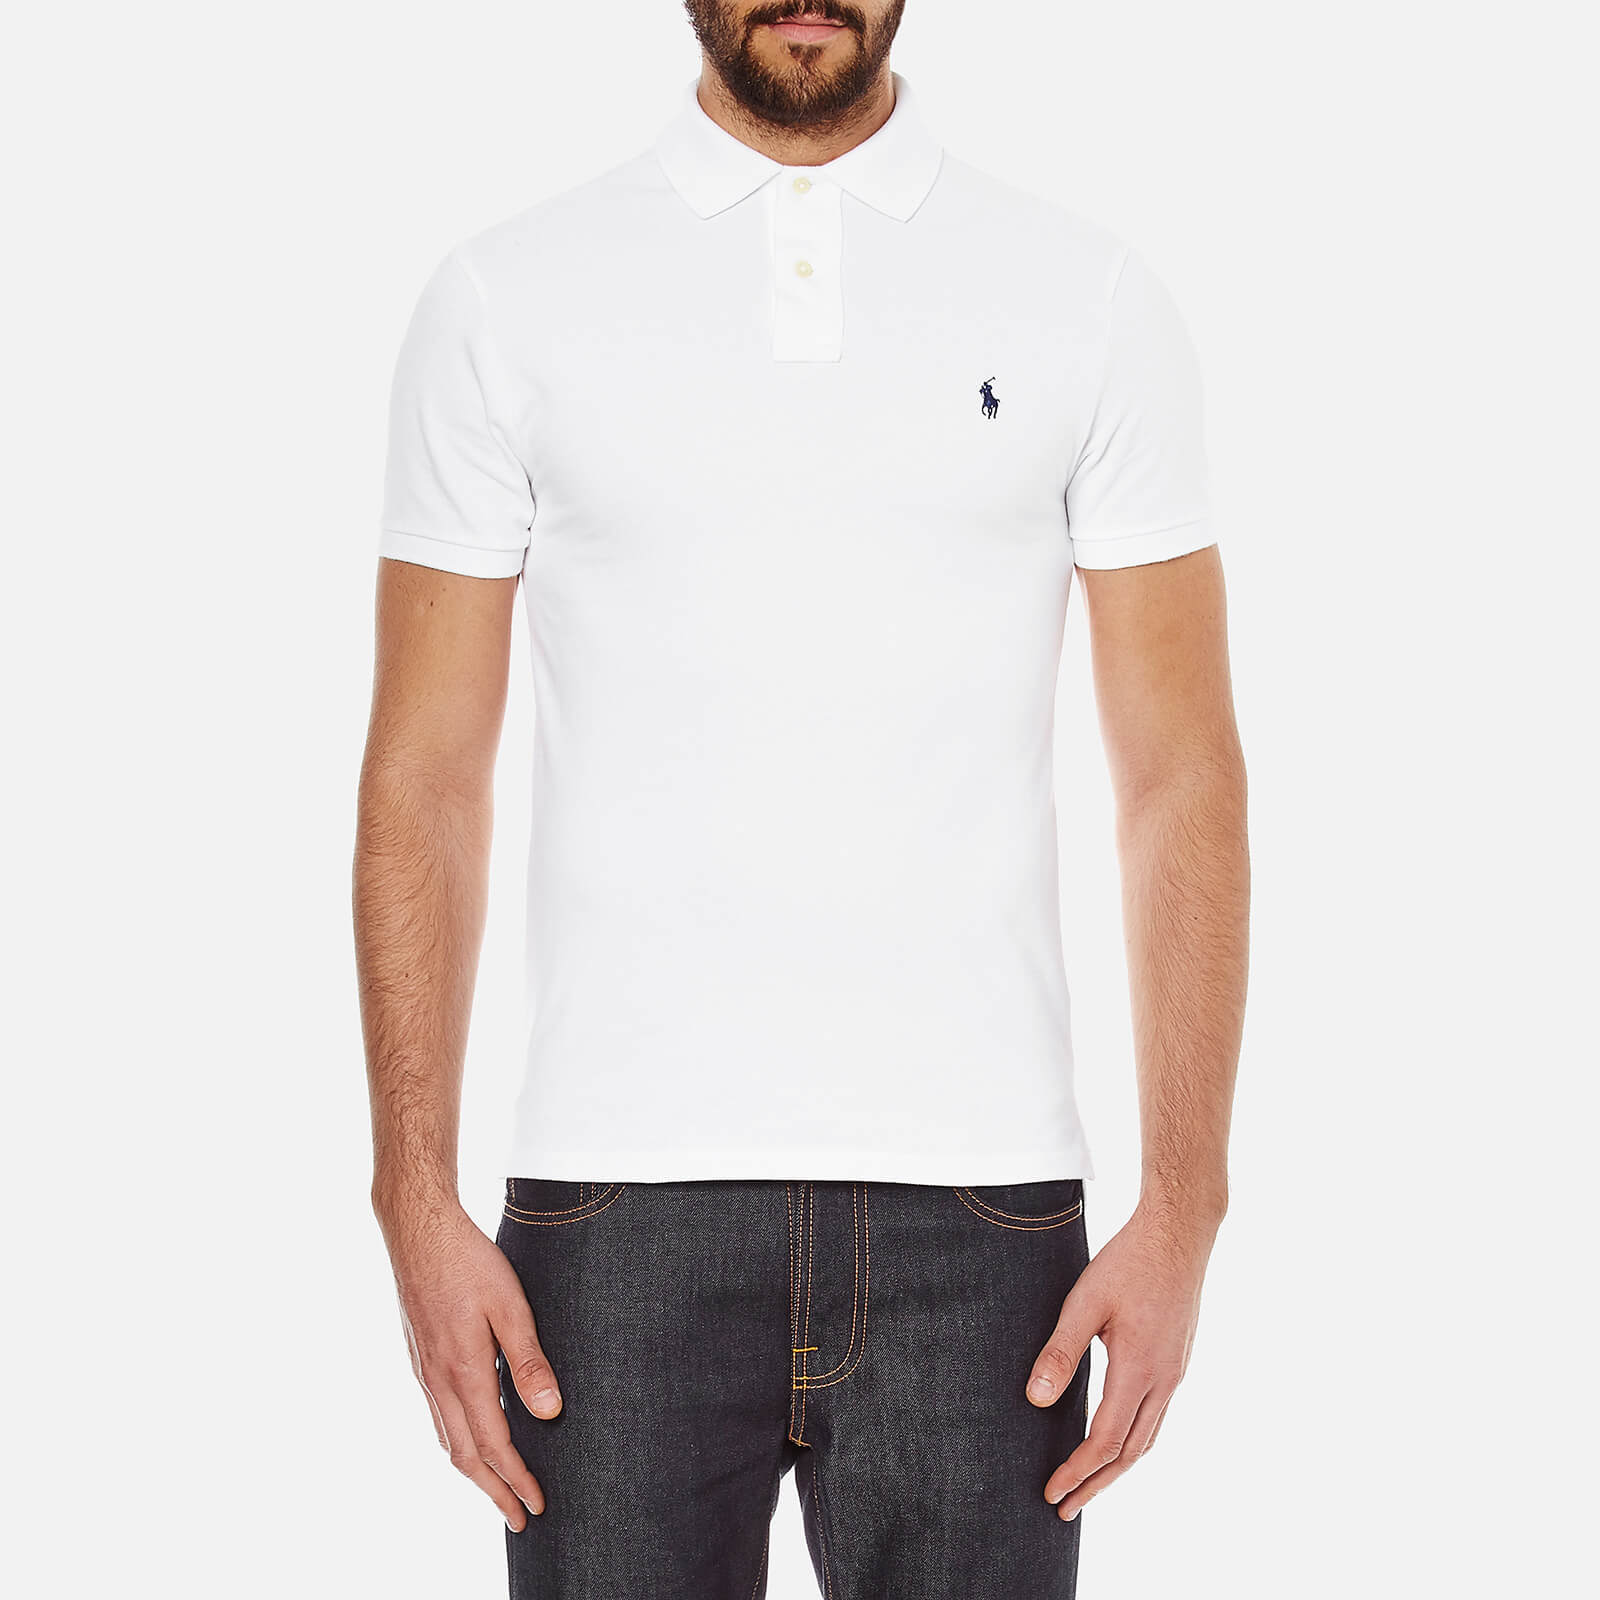 a7d8199c61674 Polo Ralph Lauren Men s Slim Fit Polo Shirt - White - Free UK Delivery over  £50